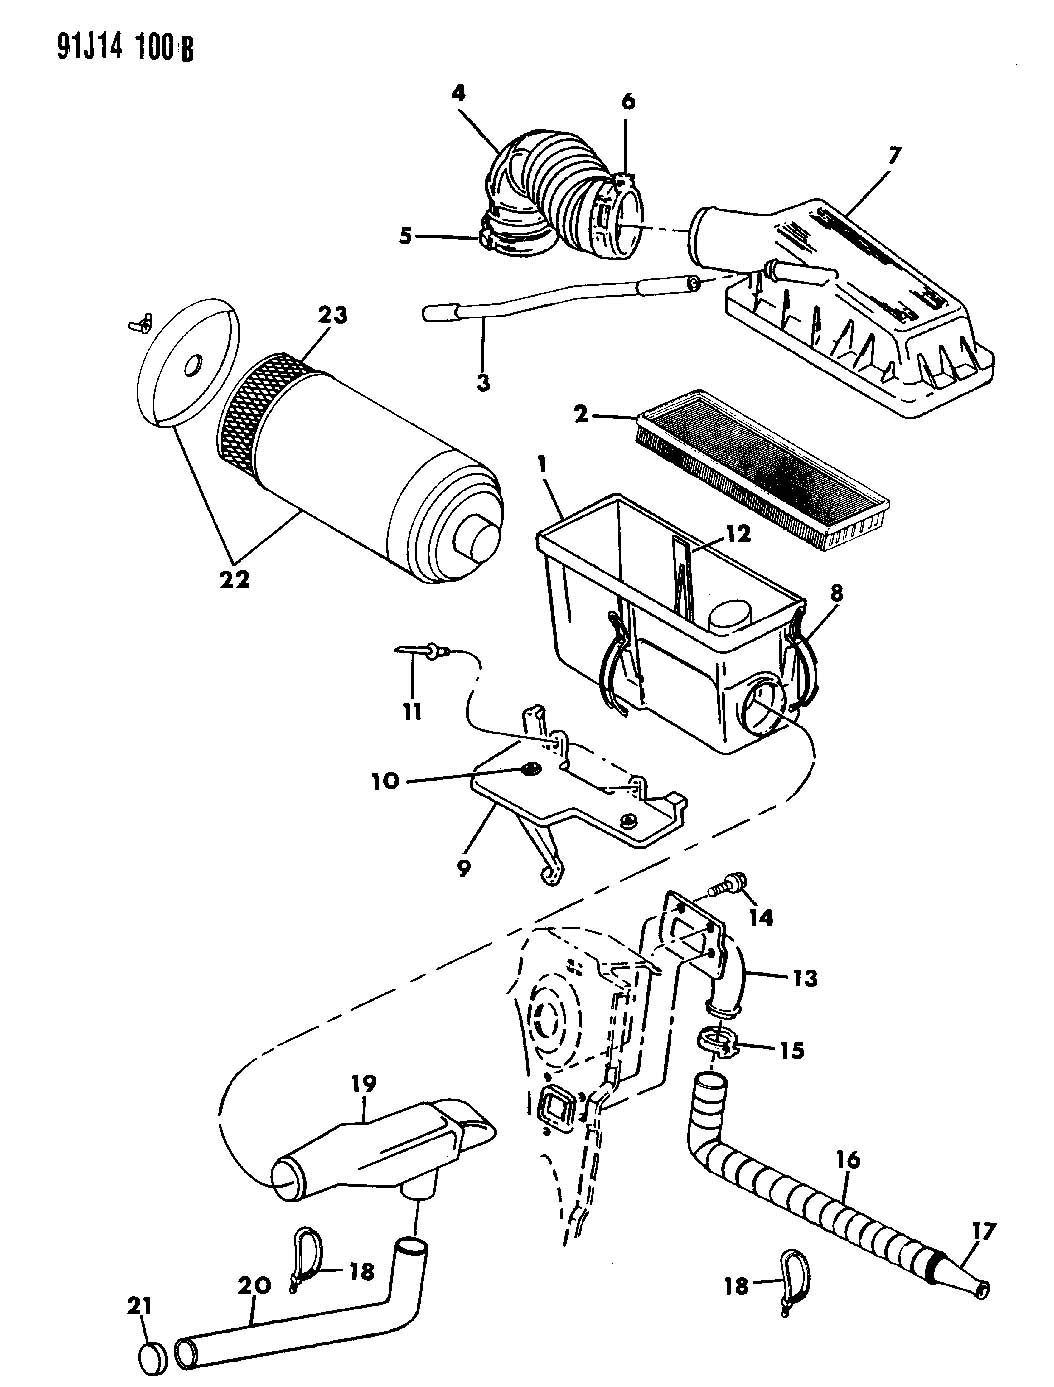 1993 jeep yj wrangler parts diagrams  u2022 wiring diagram for free